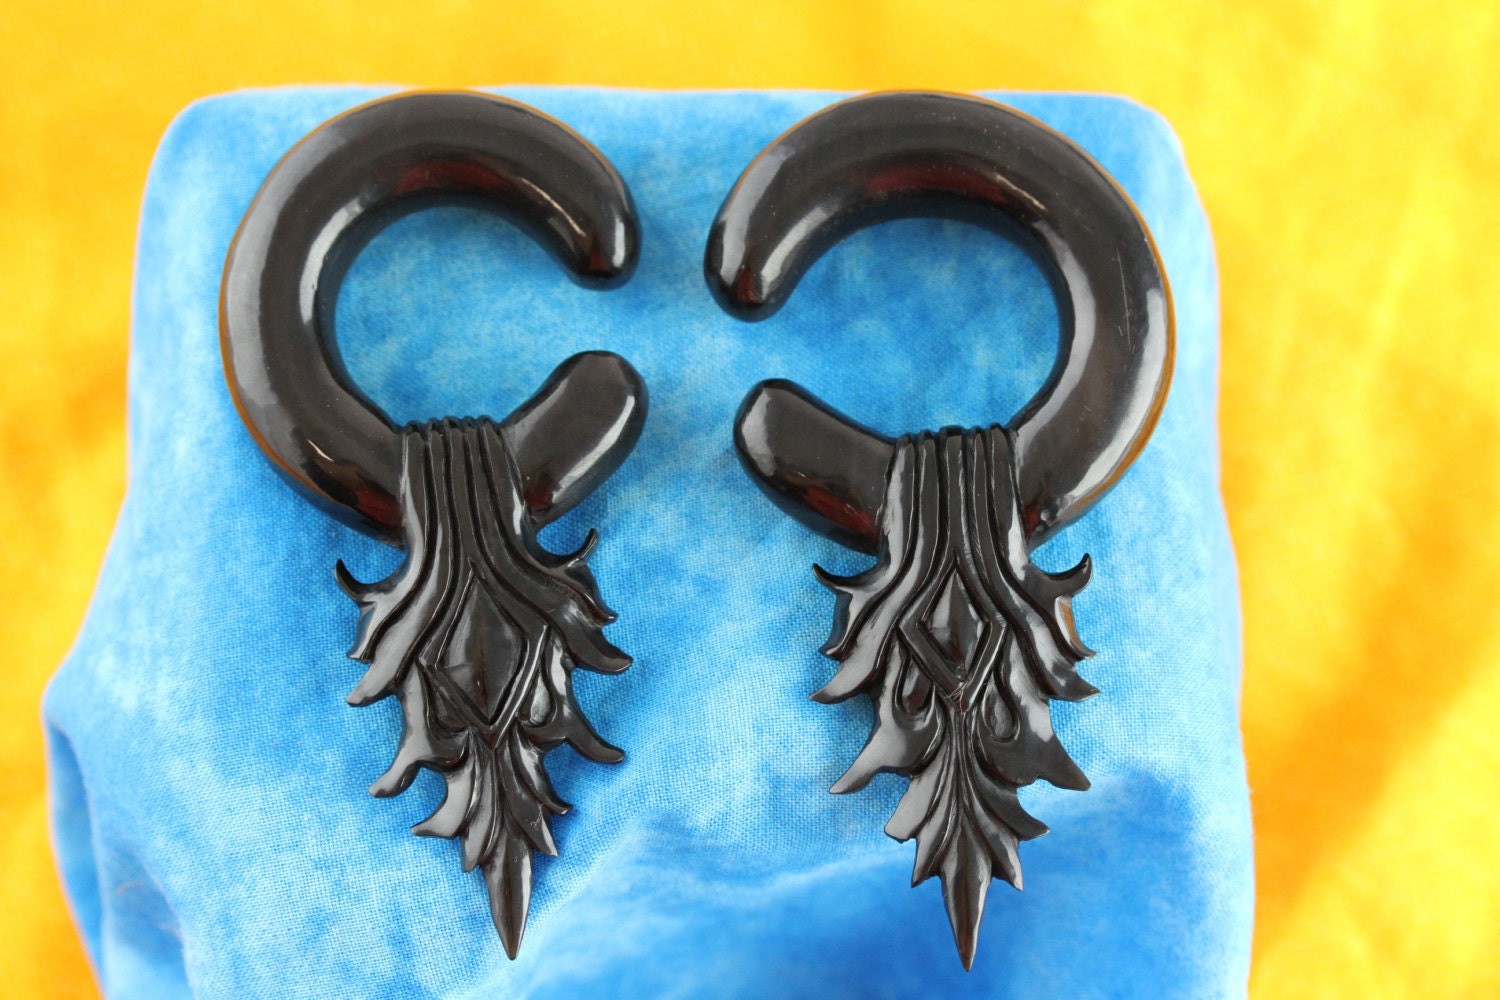 Stretched Ears Horn Hanging Earrings 1 2 Gauge 13 Mm Etsy